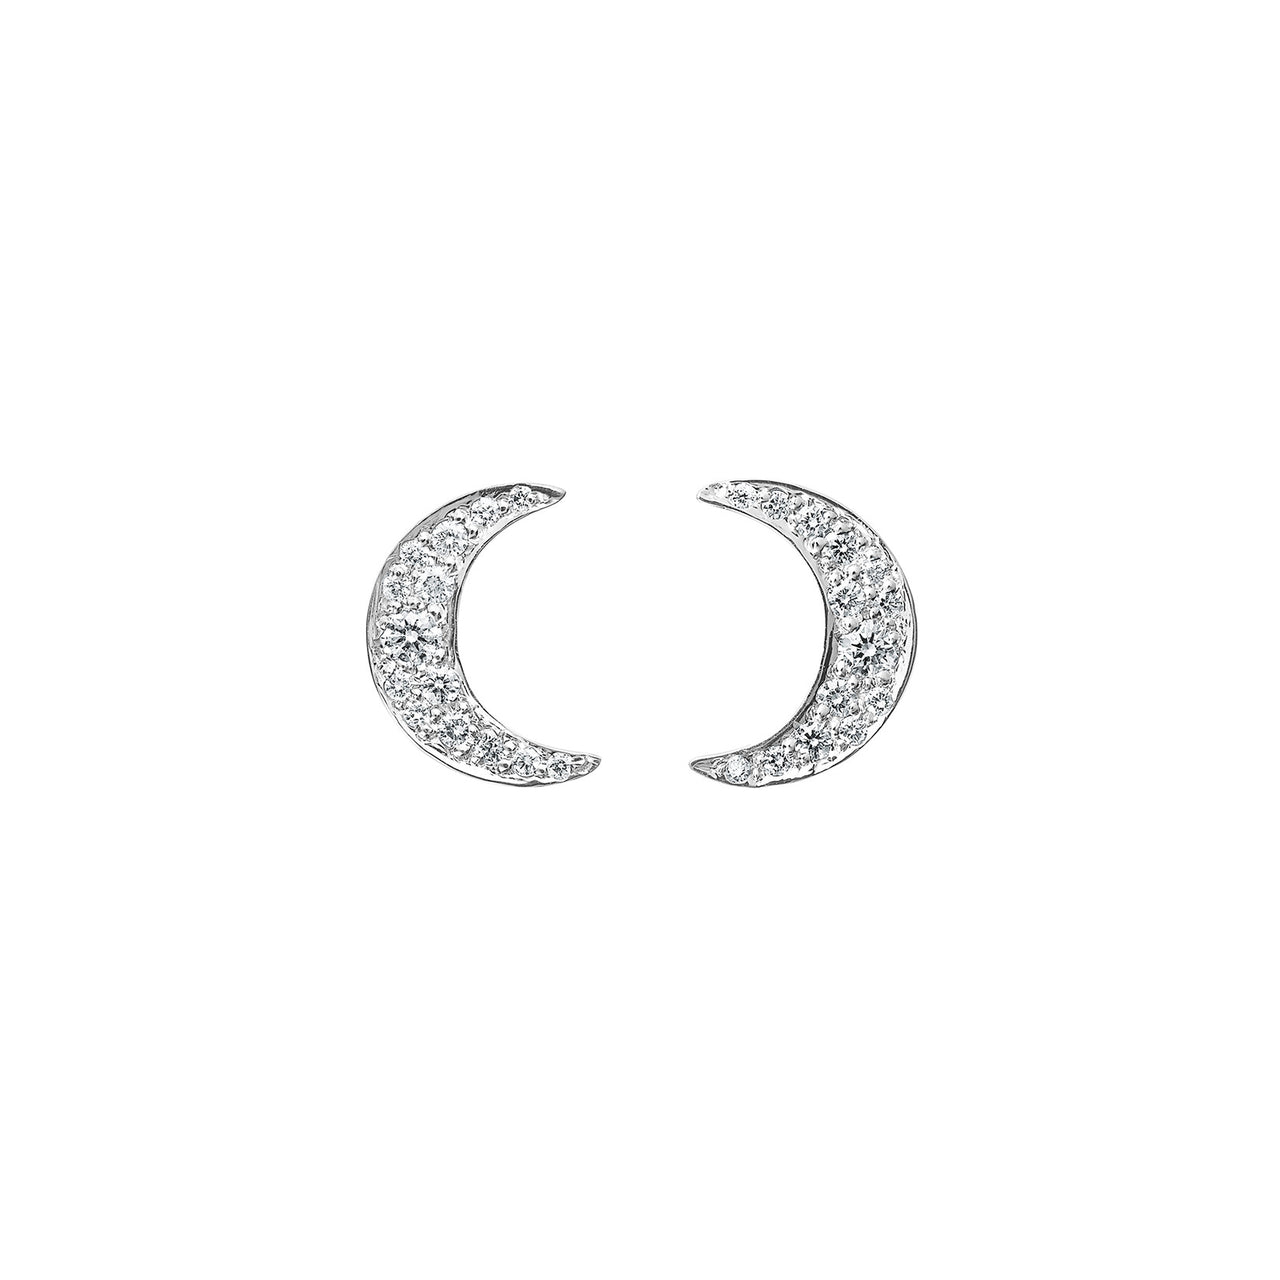 tiny simple diamond crescent moon earring studs in 18k white gold by finn by candice pool neistat